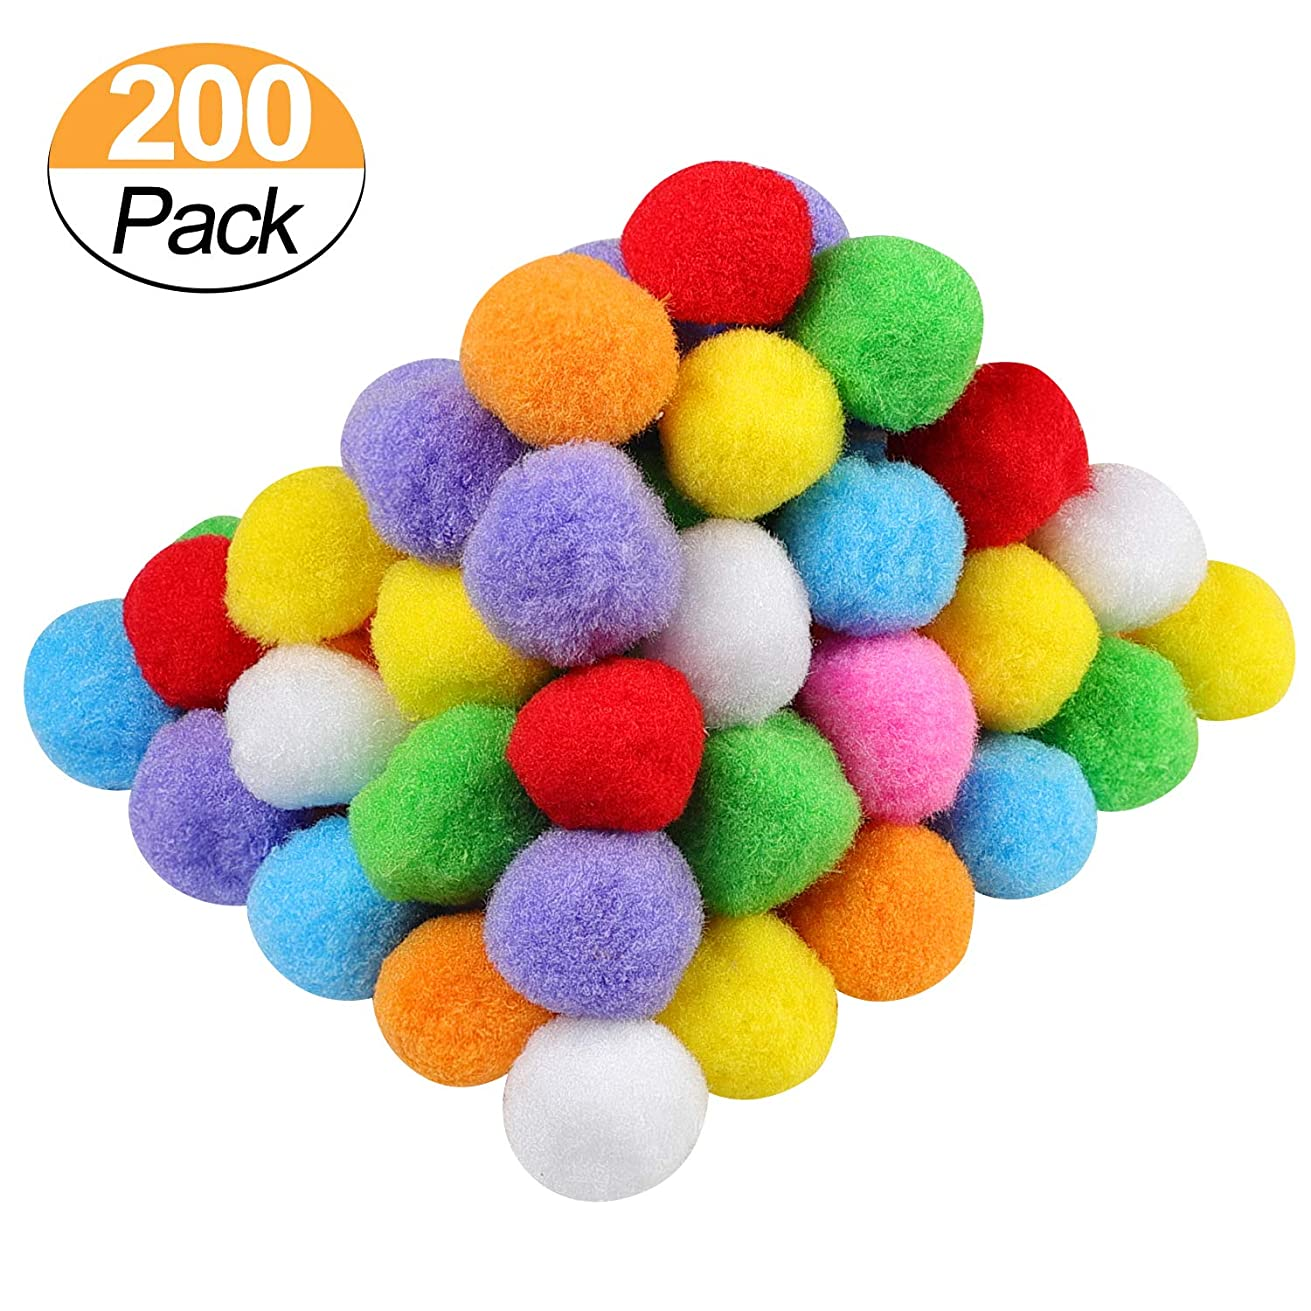 1.5 Inch Assorted Pom Poms for DIY Creative Crafts Decorations, Assorted Colors (200 Pack)